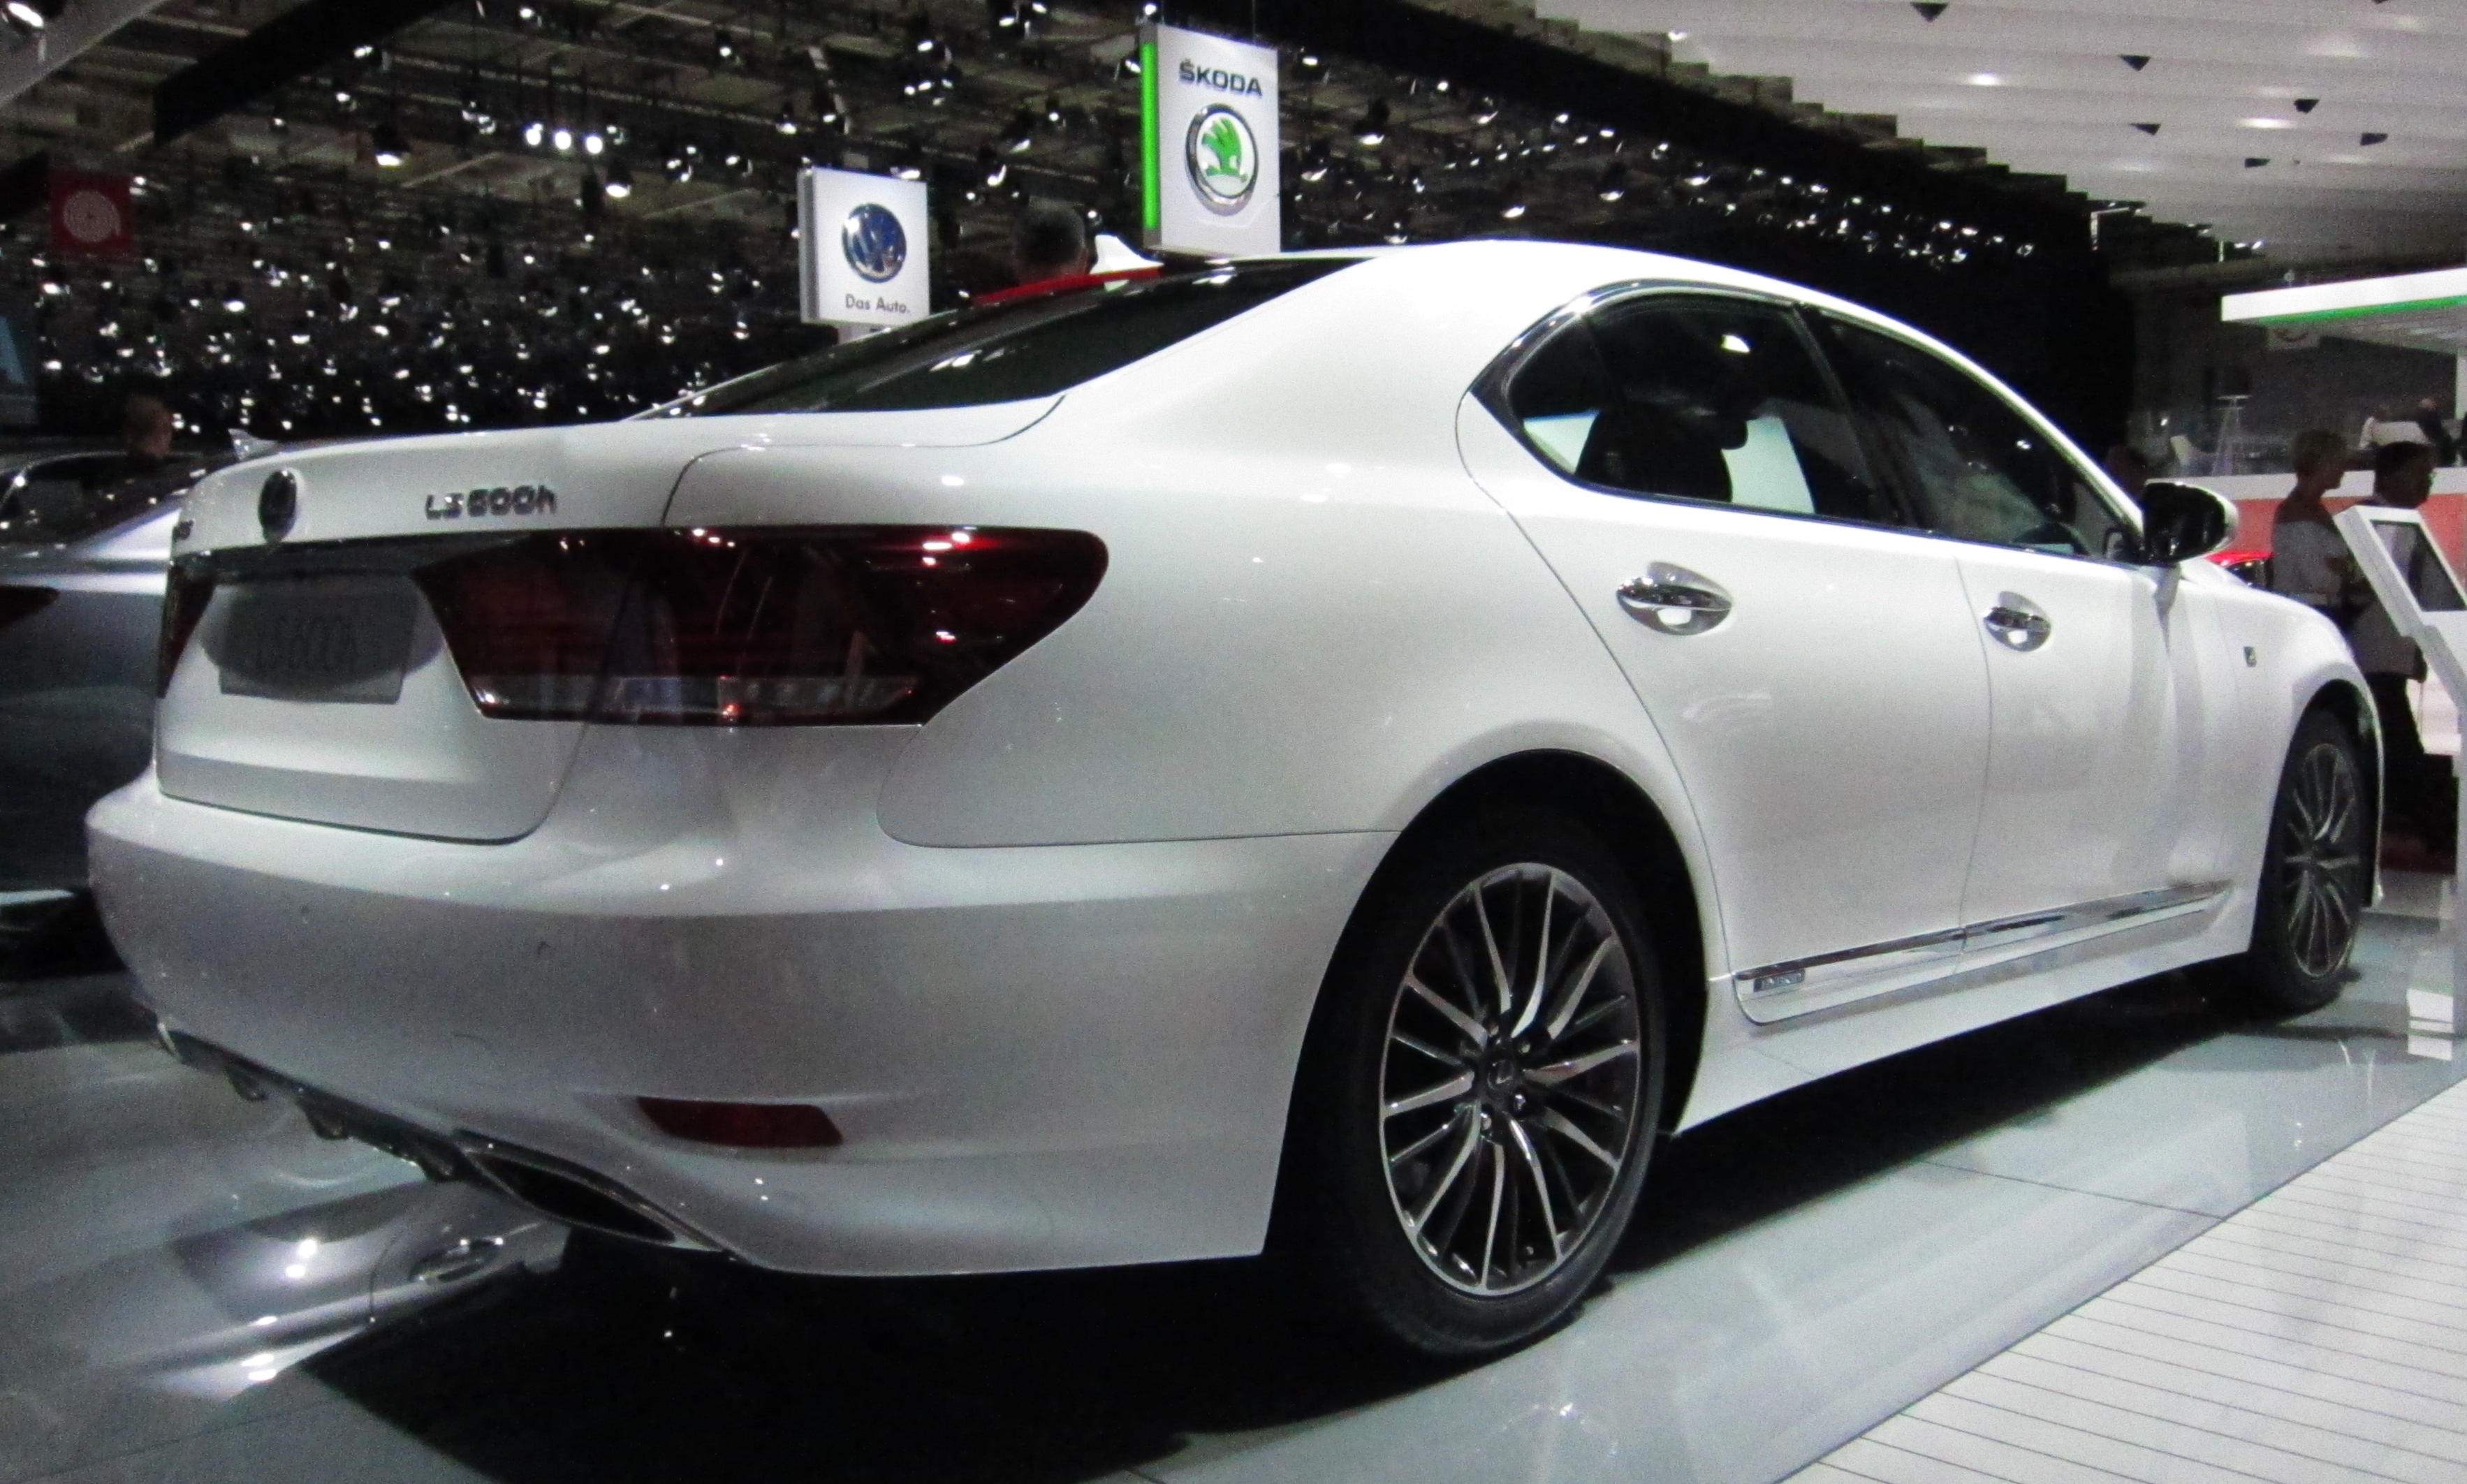 File:Lexus LS 600h facelift (front quarter).JPG - Wikimedia Commons